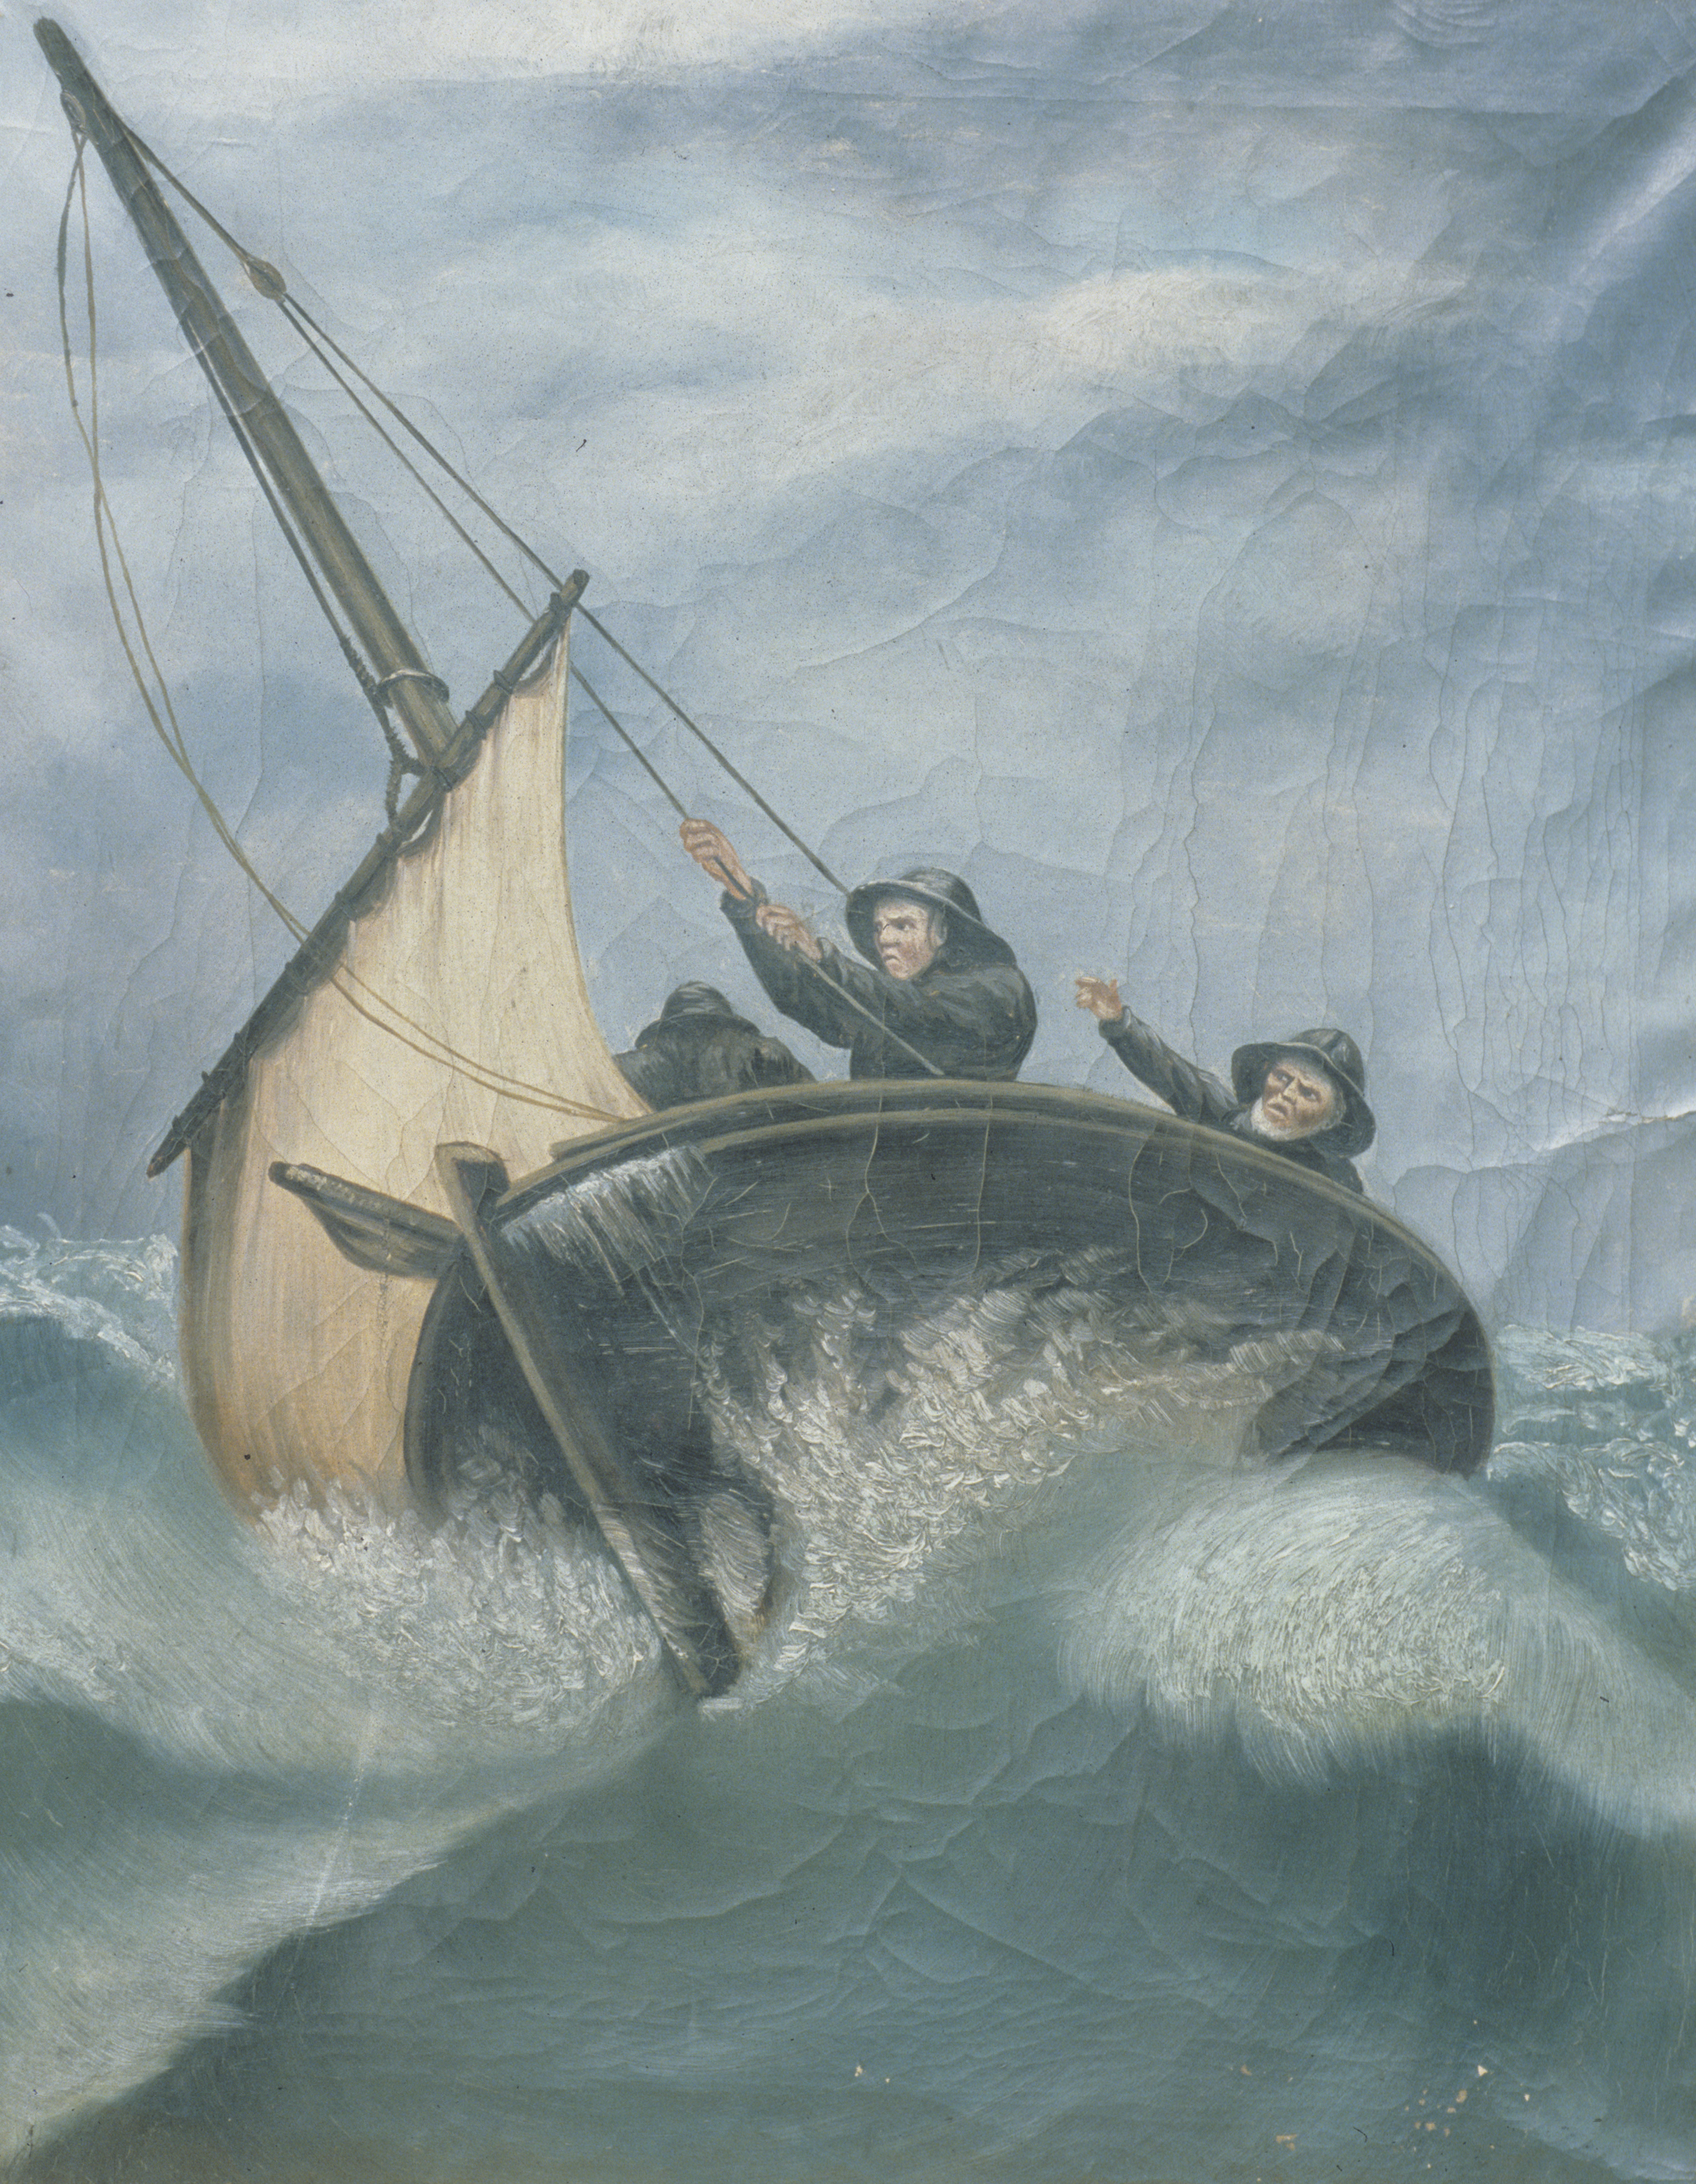 A painting of three men in a small fishing boat during a storm at sea.